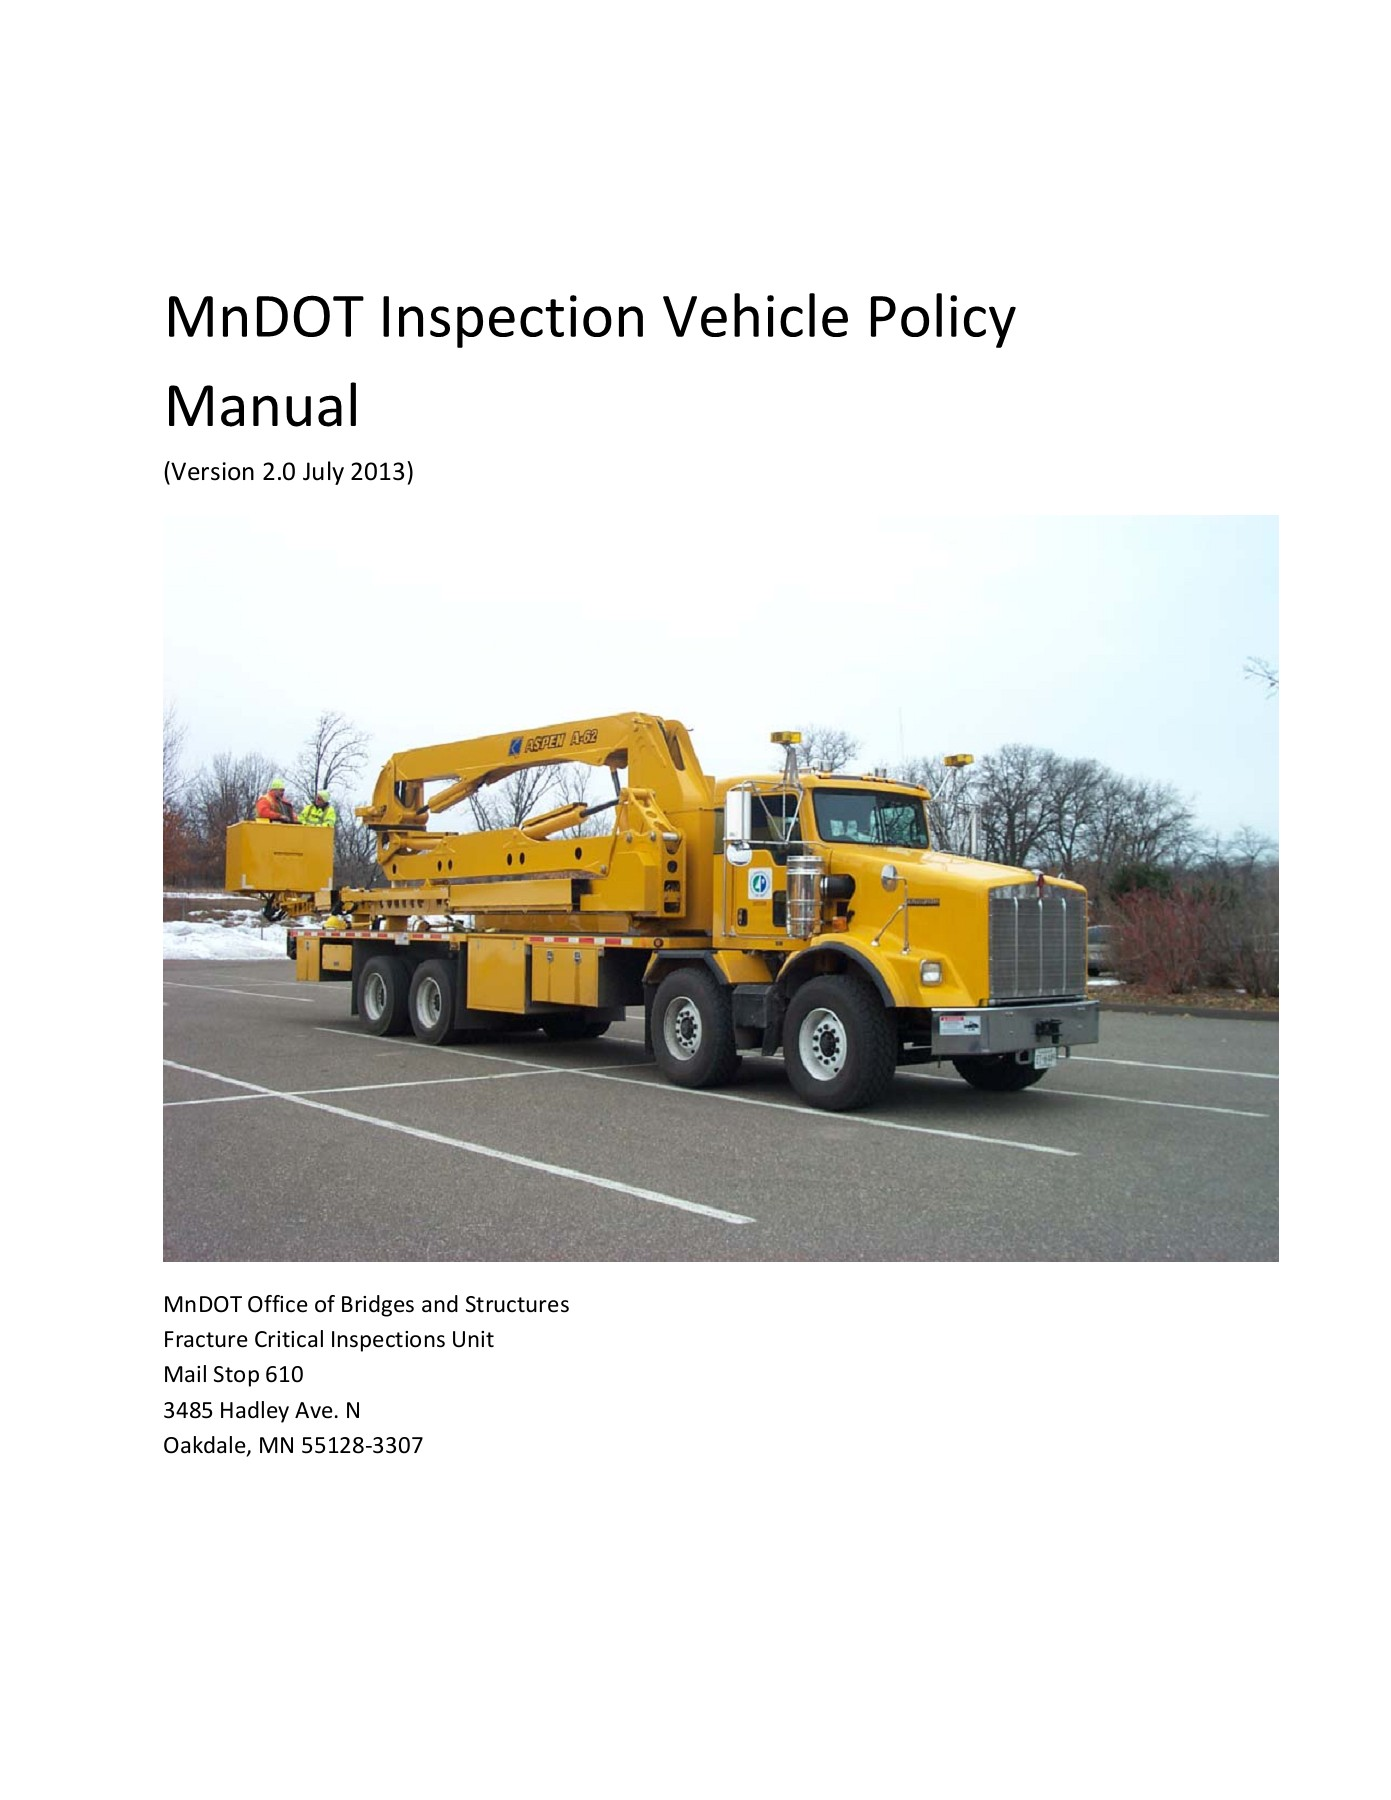 Inspection Vehicle Policy Manual V2 0 MnDOT Pages 1 - 50